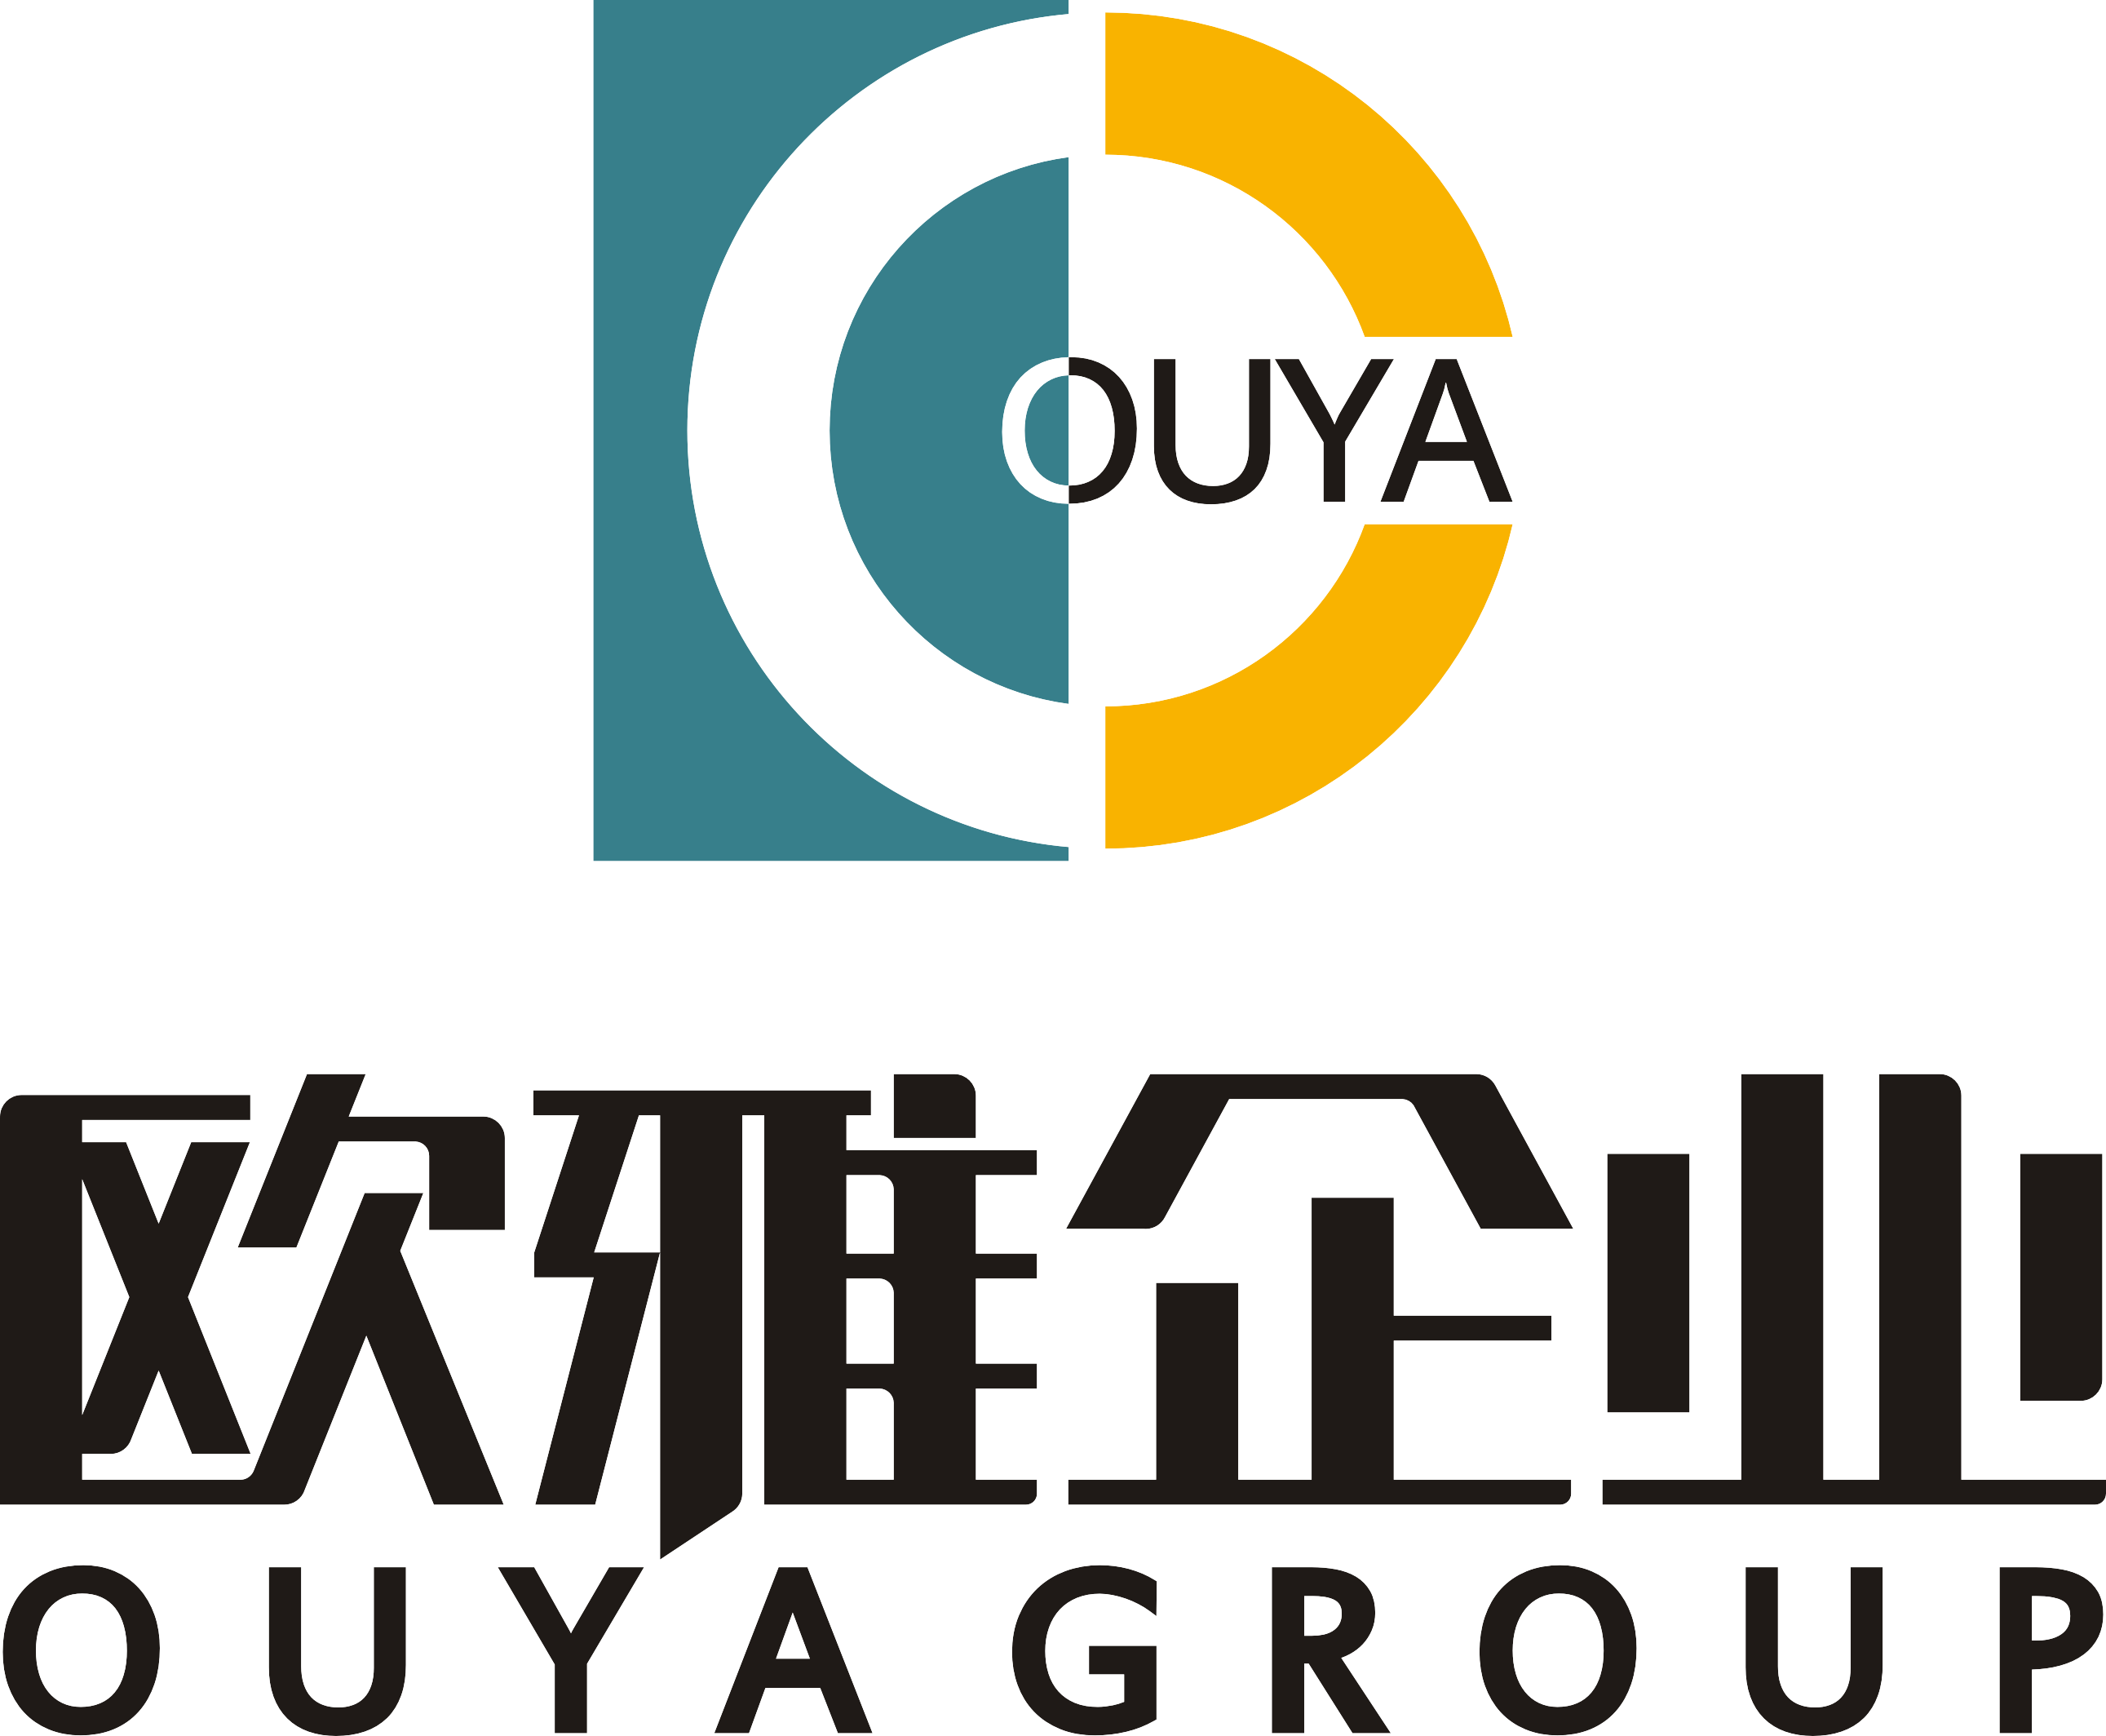 QINGYUAN OUYA CERAMIC CO.,LTD